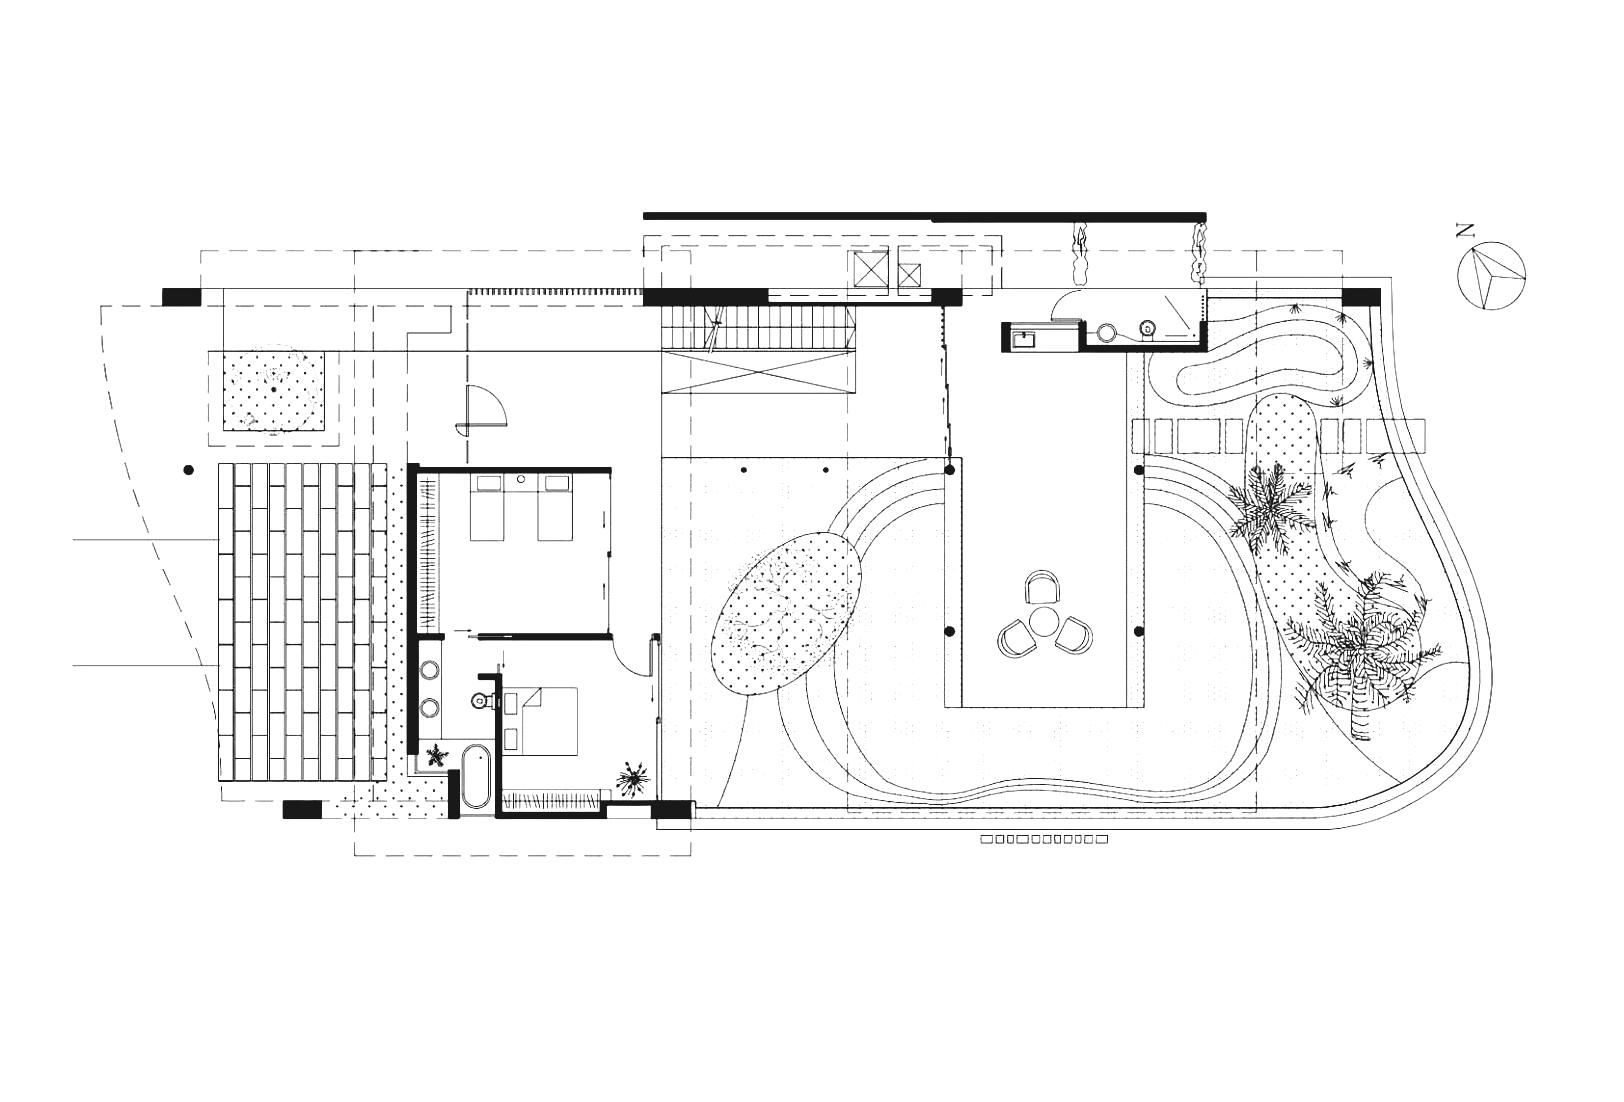 best pool house plans with bathroom for modern home homelk pools ...